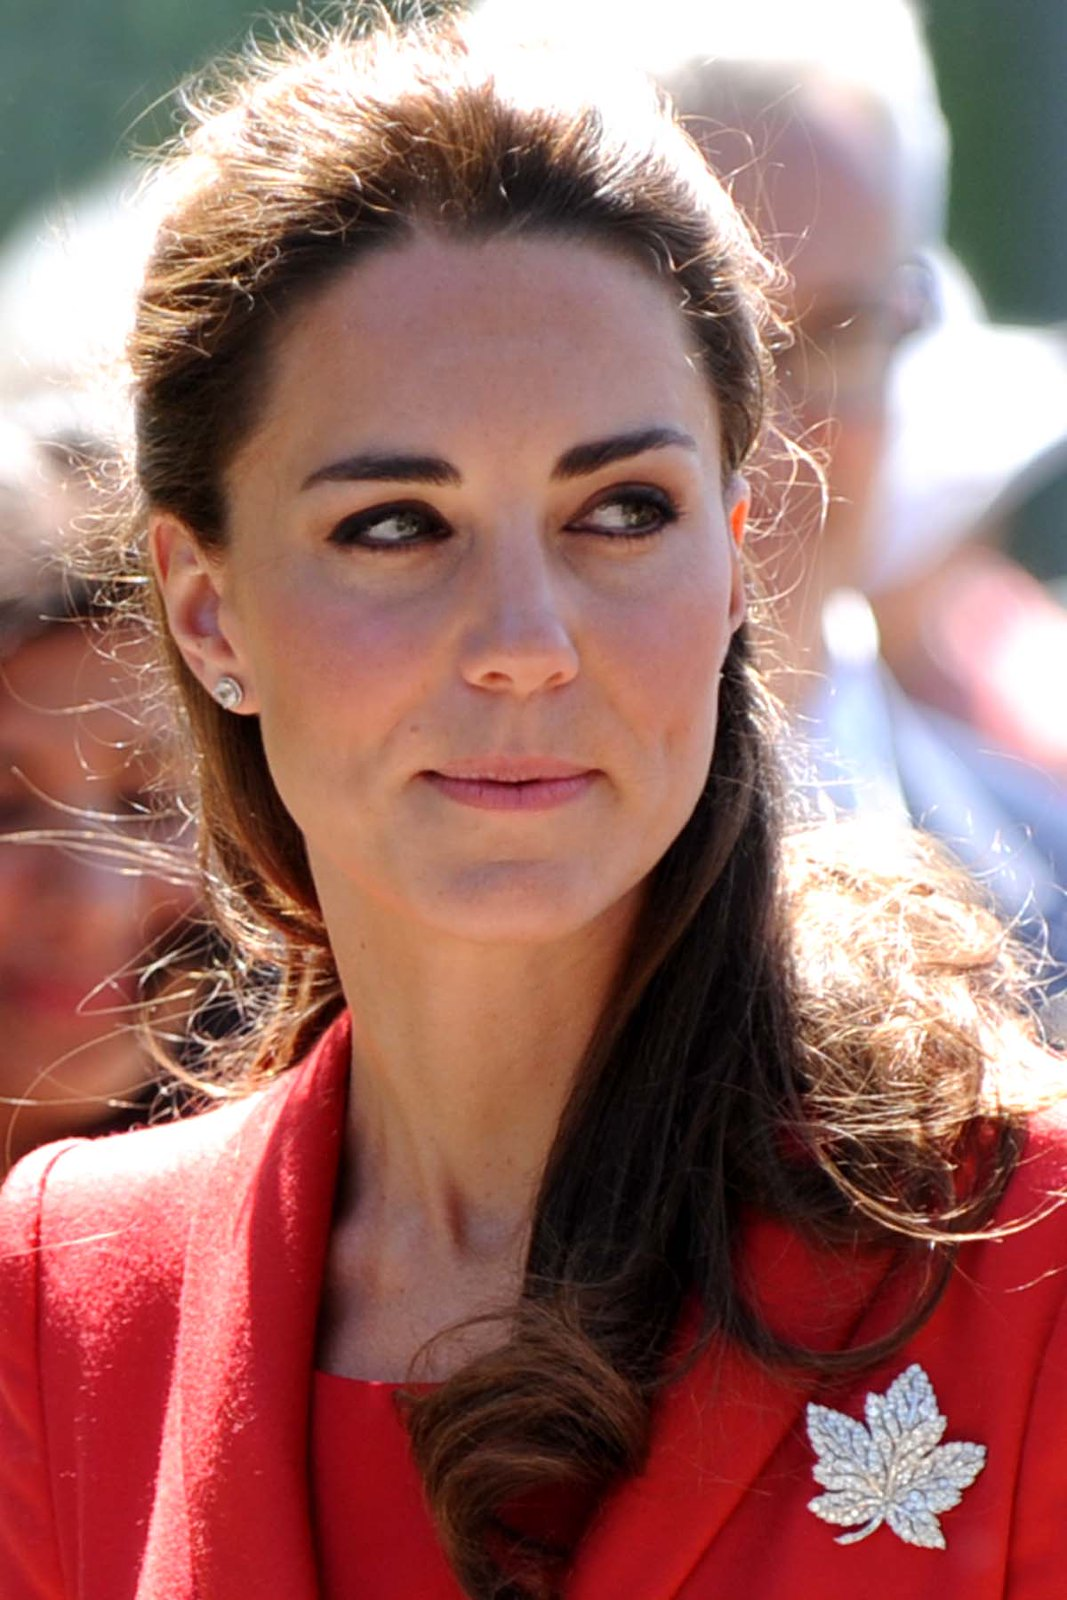 The Duchess of Cambridge in Canada in 2011